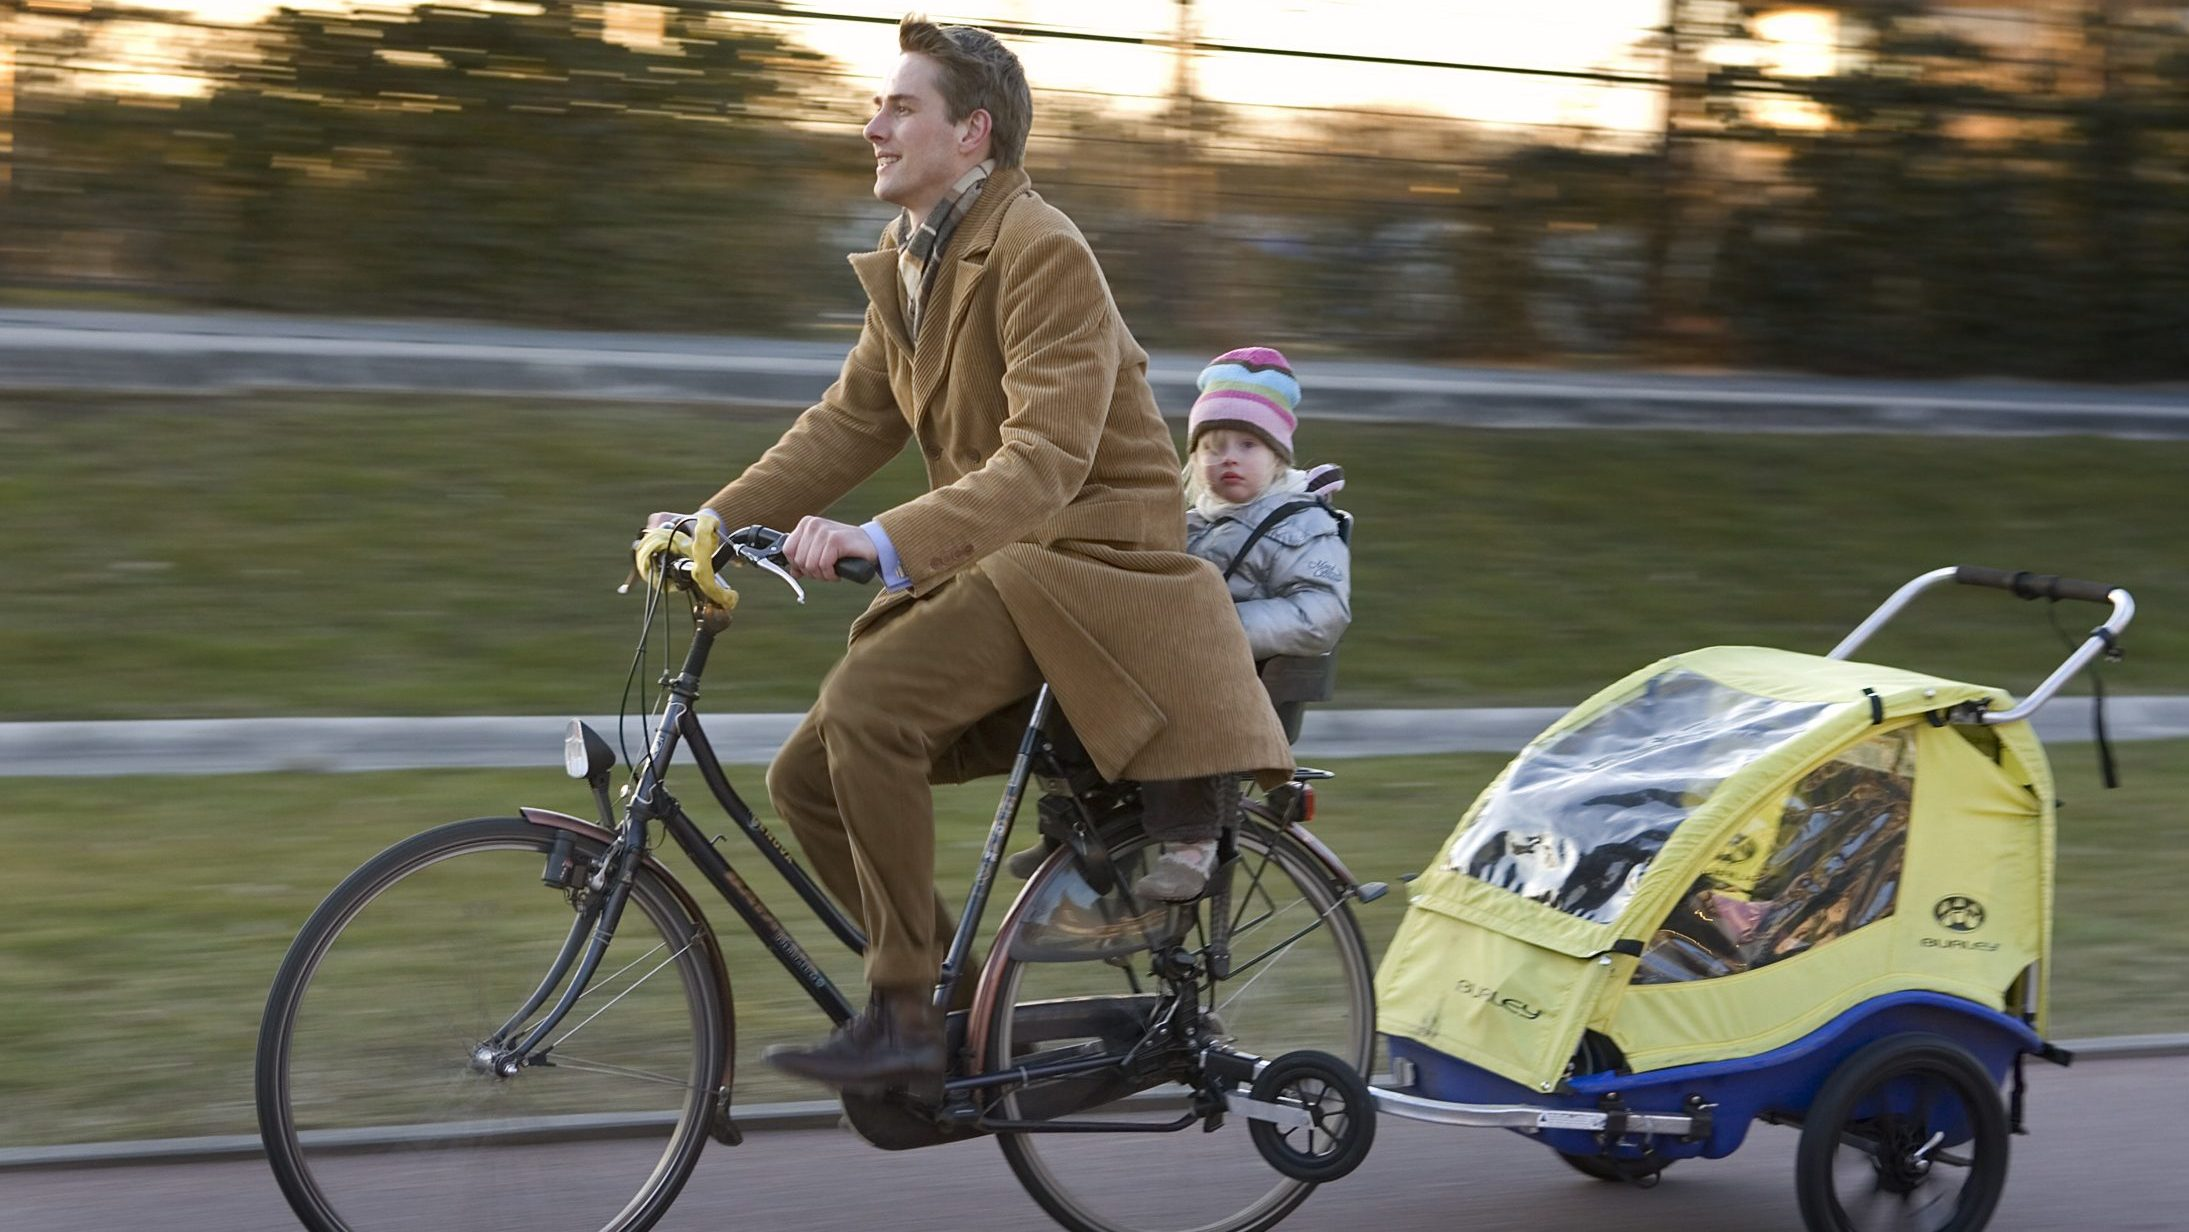 A man rides his bicycle with a baby and a trolley behind him